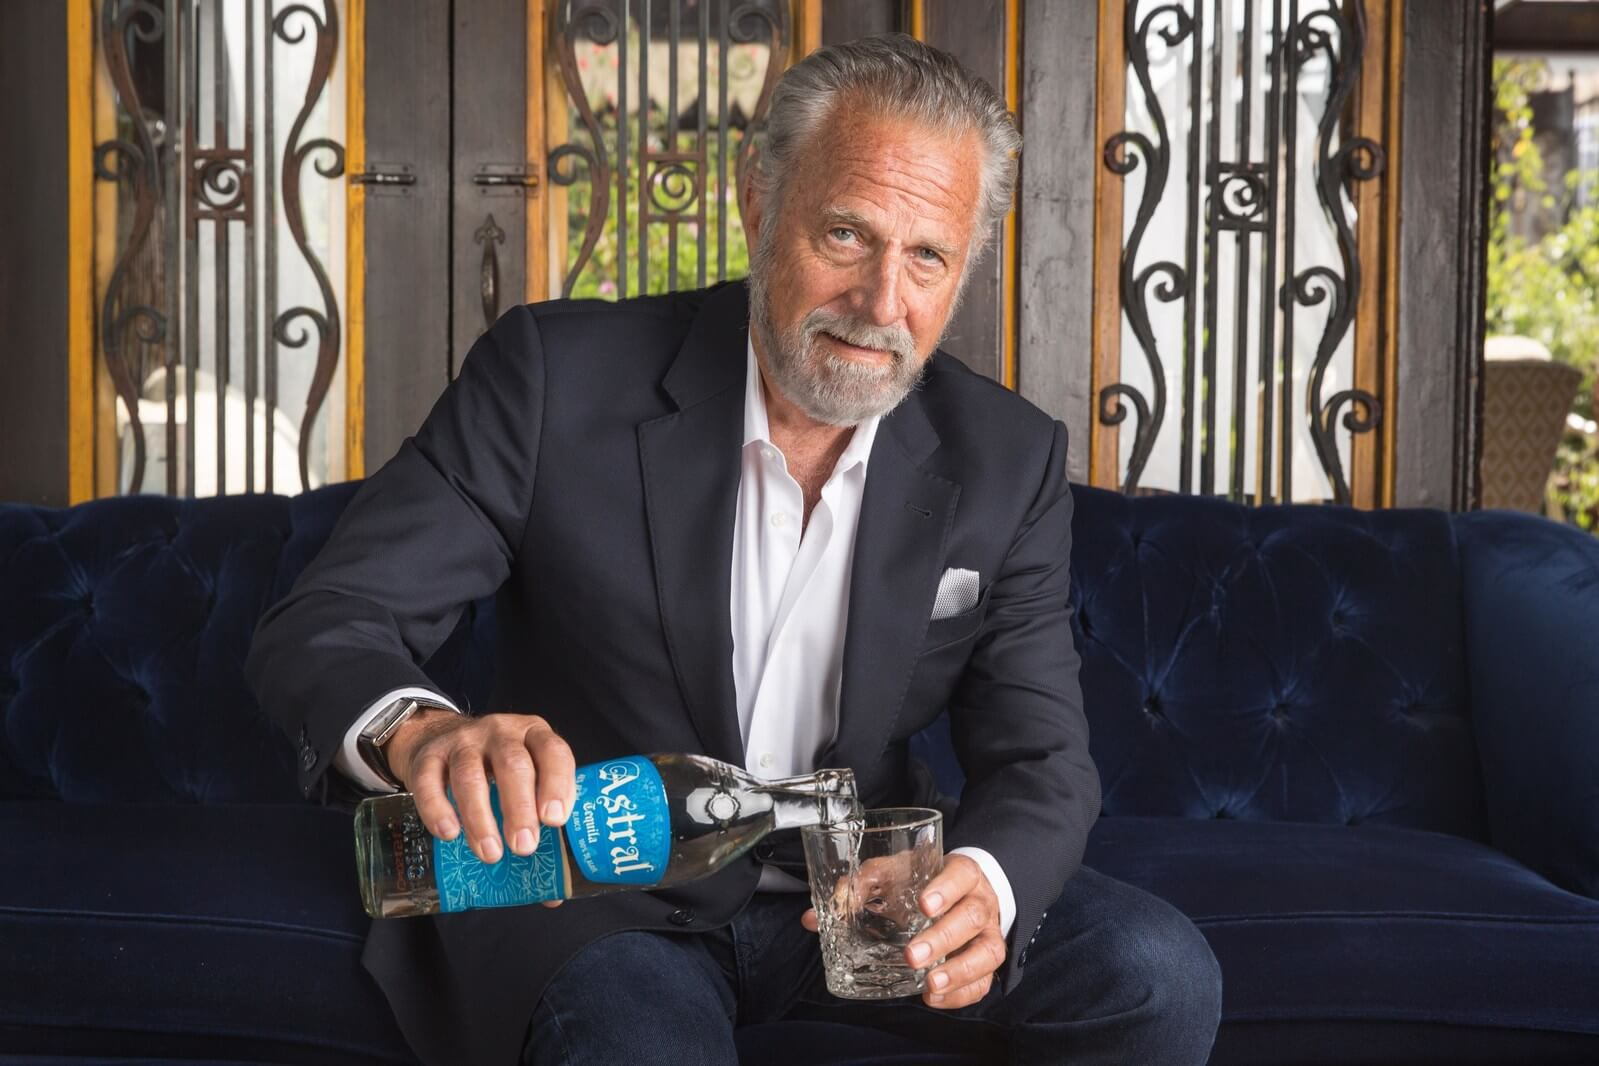 Jonathan Goldsmith, the Most Interesting Man in the World, partners with Astral Tequila - What's Shakin' week of June 12